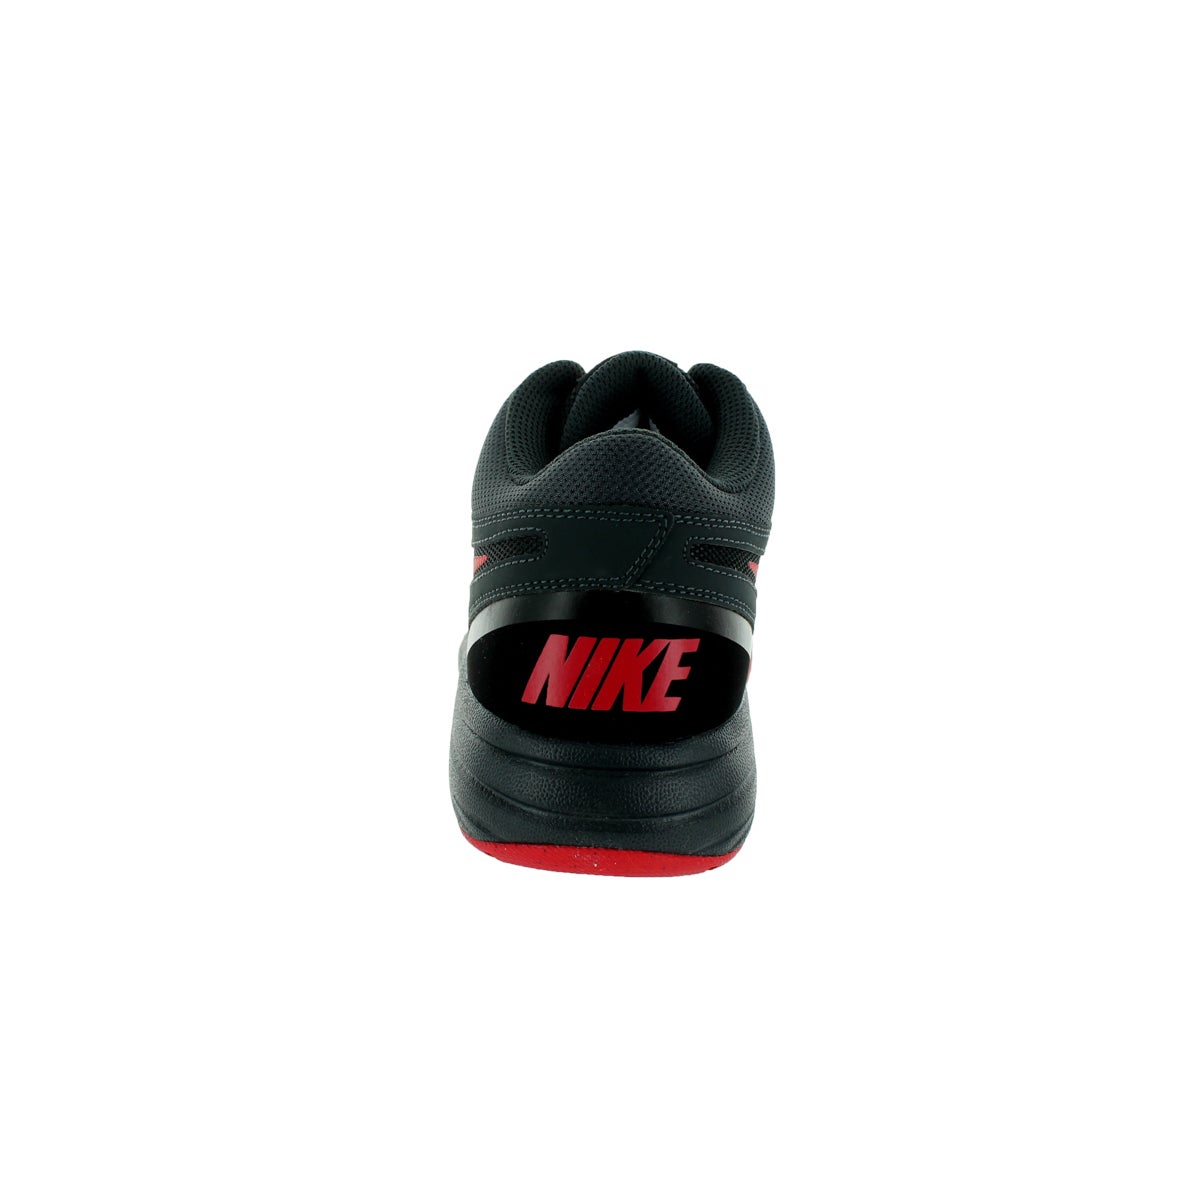 check out 8de91 11b6a Shop Nike Men s The Overplay VIII NBK Black University Red Anthracite Dark  Grey Nubuck Basketball Shoes - Free Shipping Today - Overstock - 13404791